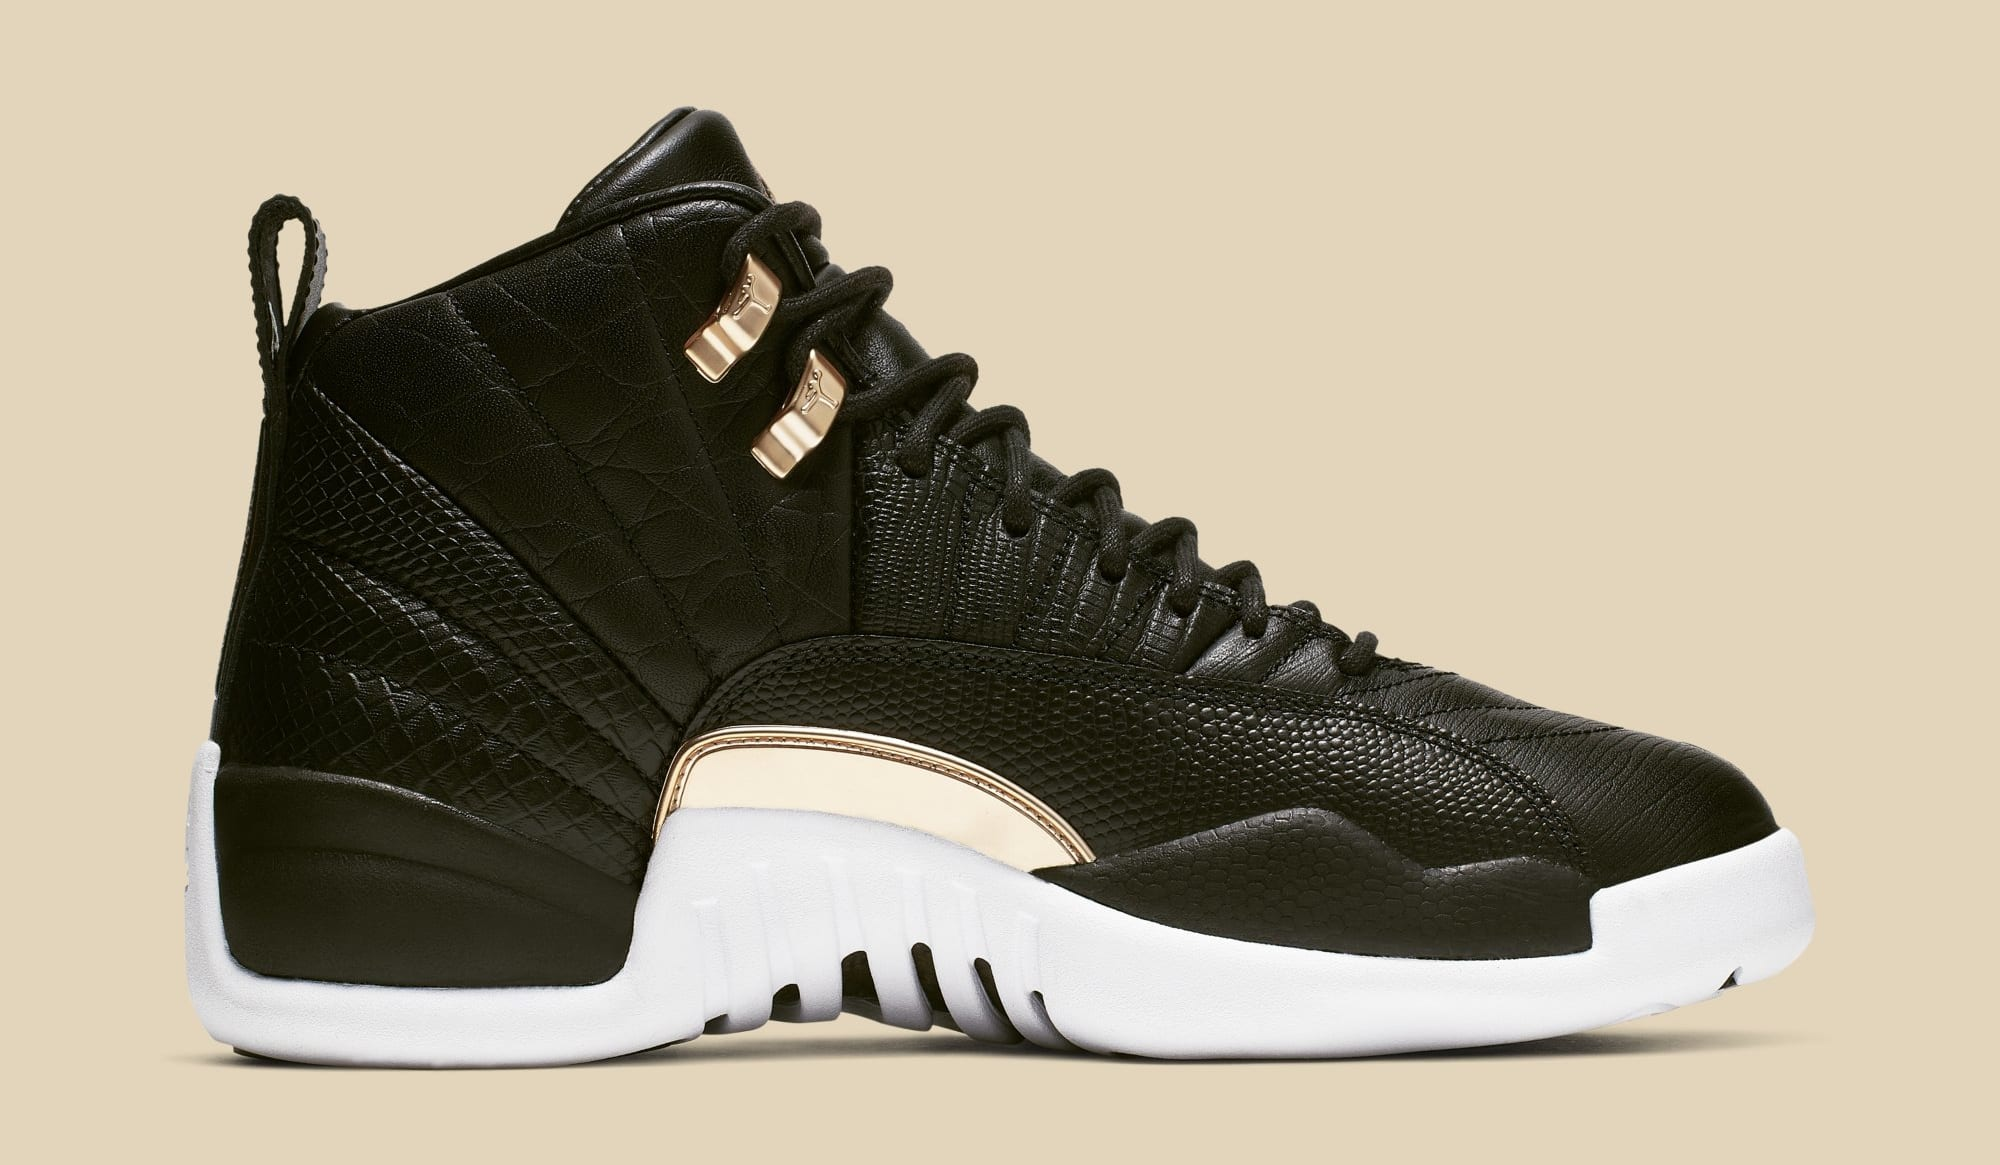 separation shoes c2969 91827 Image via Nike WMNS Air Jordan 12  Black Metallic Gold-White  AO6068-007 (